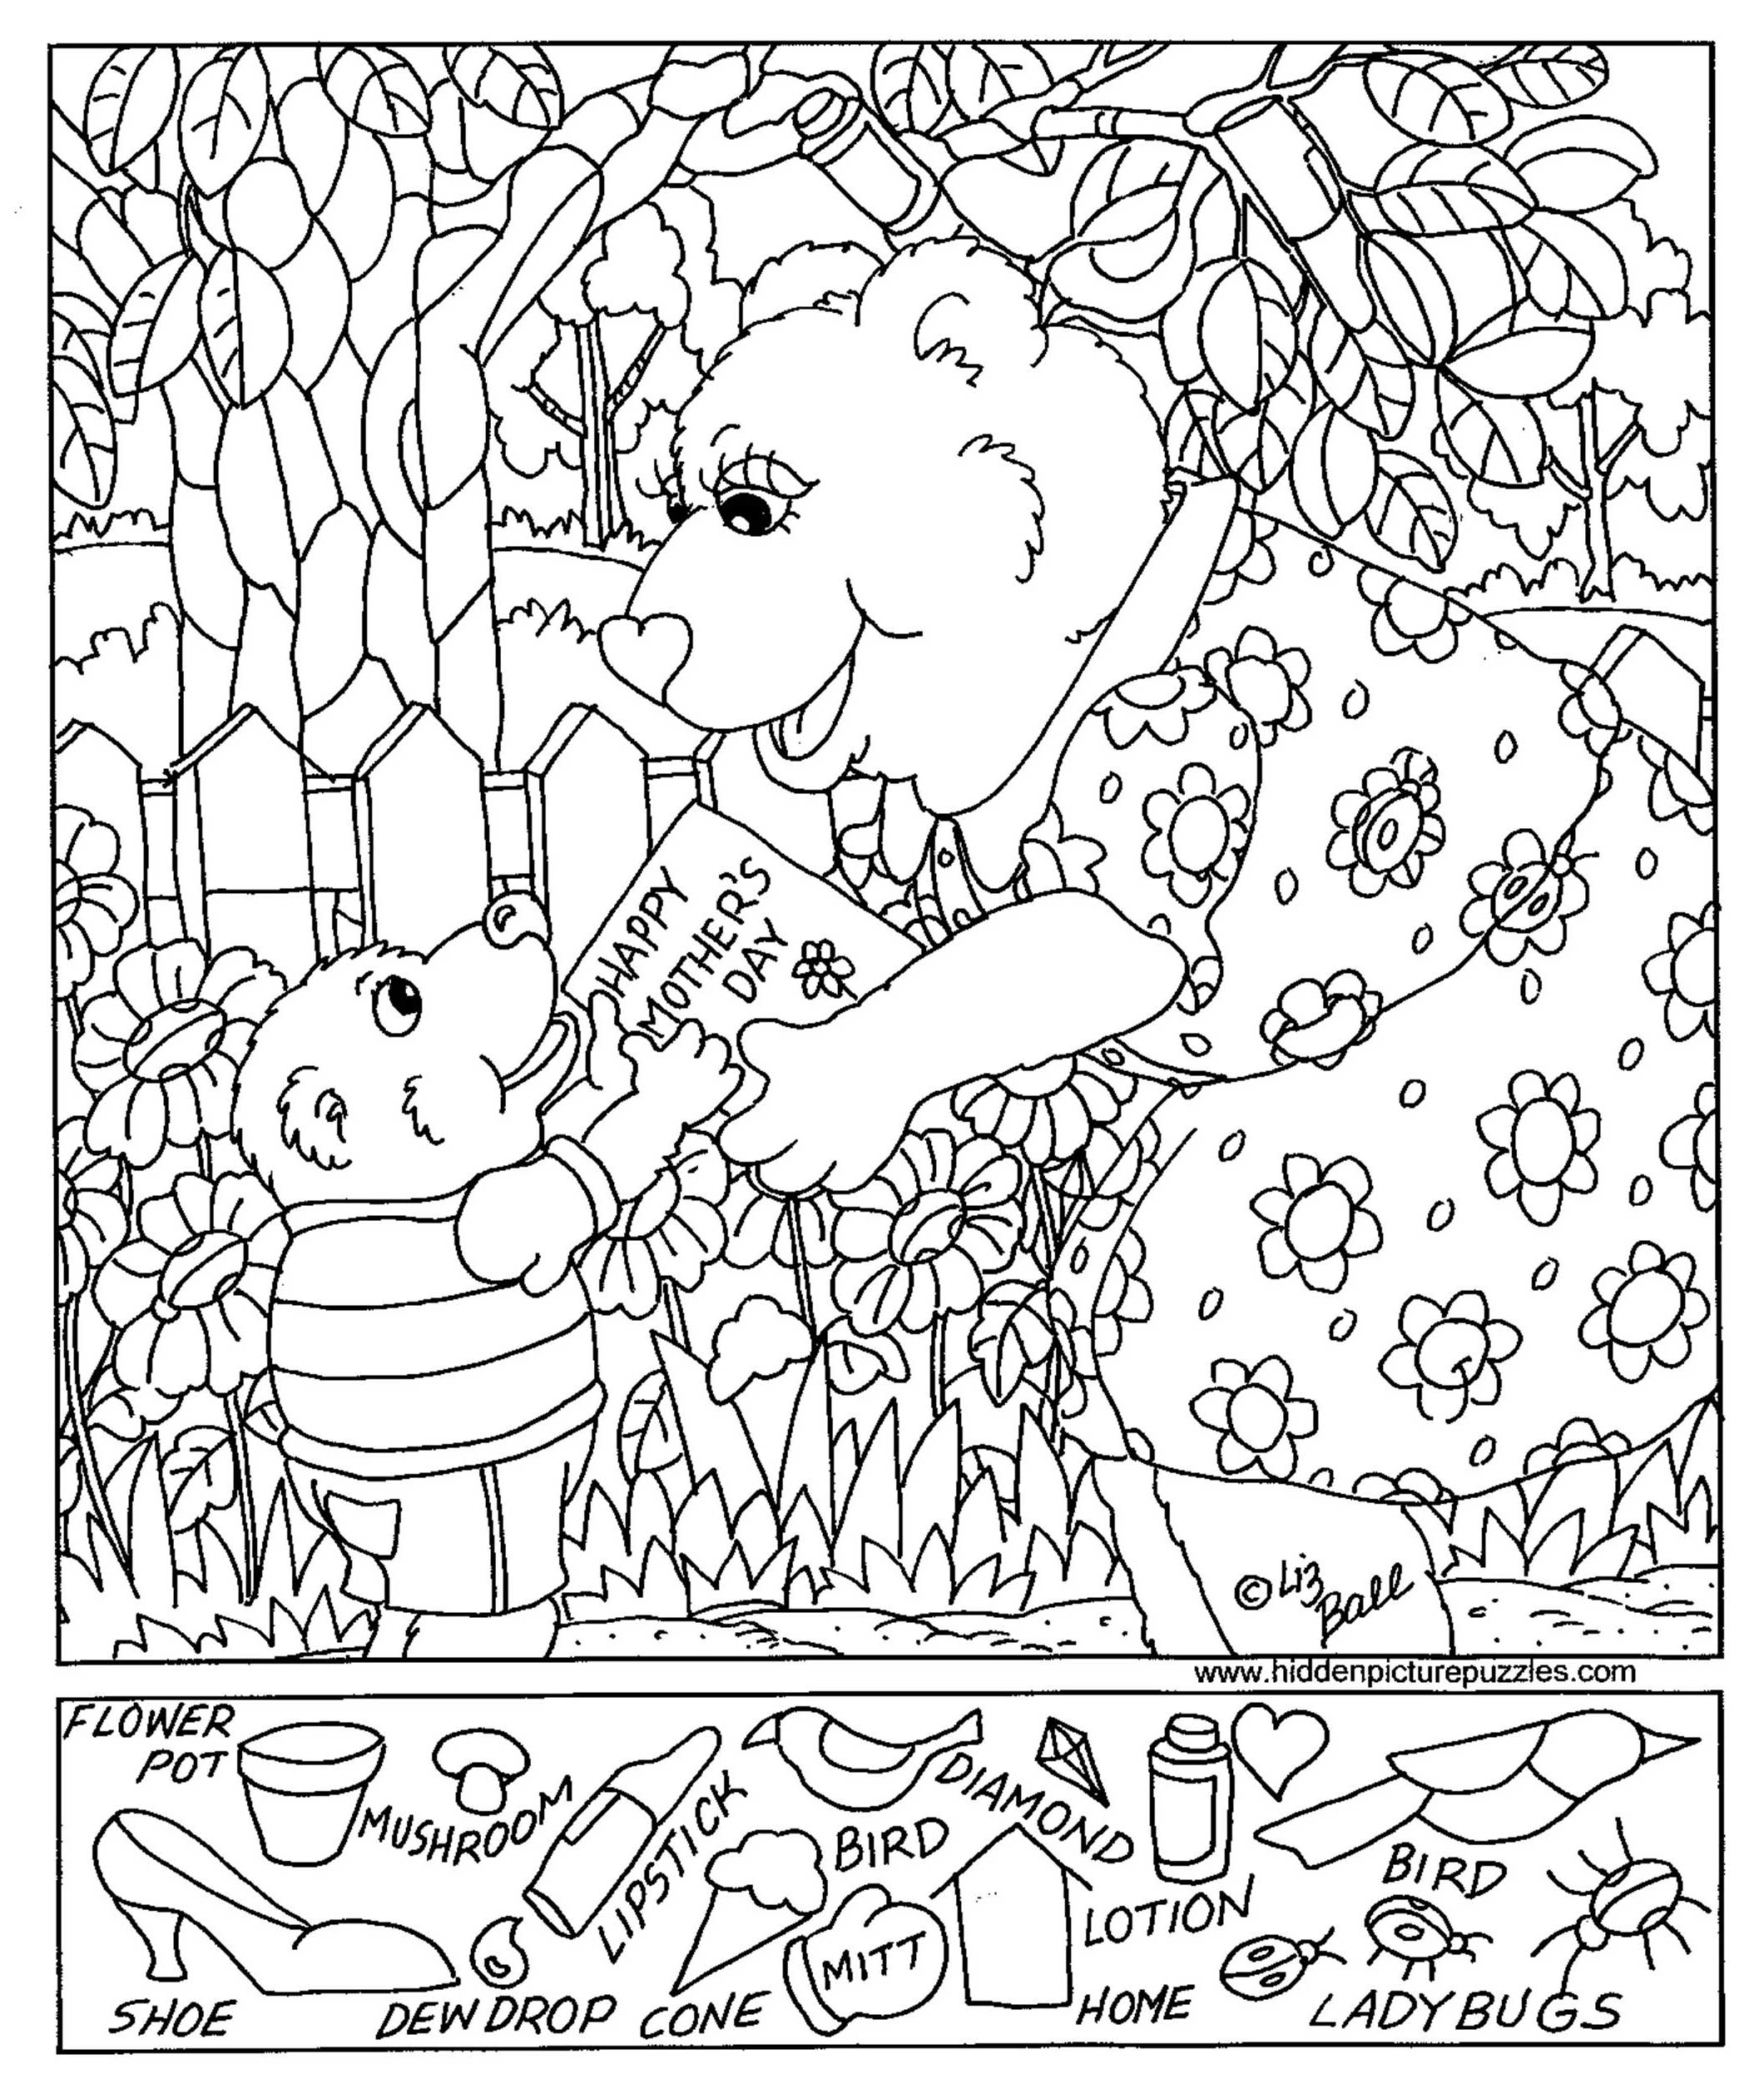 Free Printable Hidden Pictures For Kids At Allkidsnetwork - Free Printable Hidden Pictures For Kids